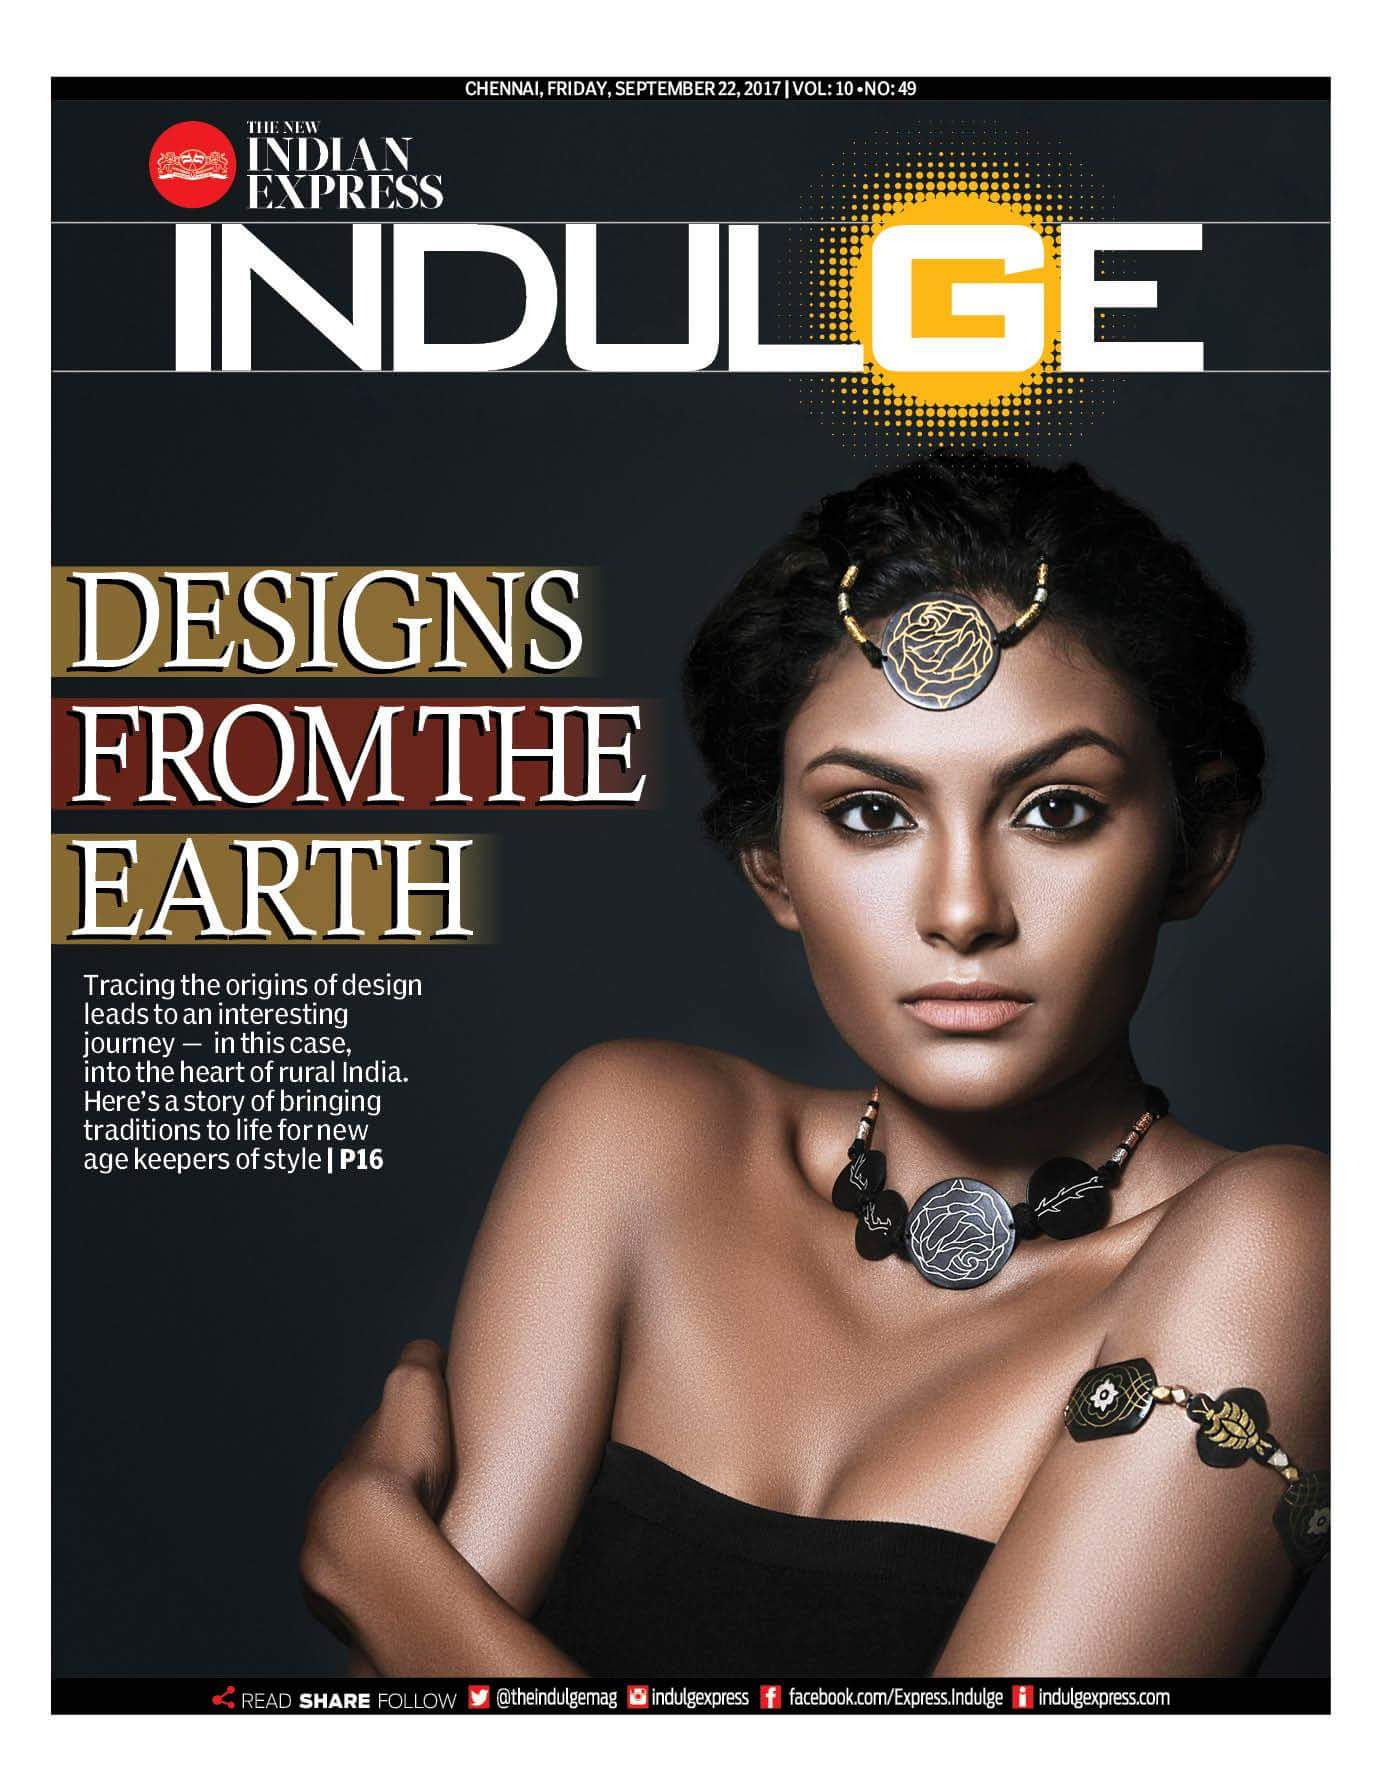 The New India Express – Indulge